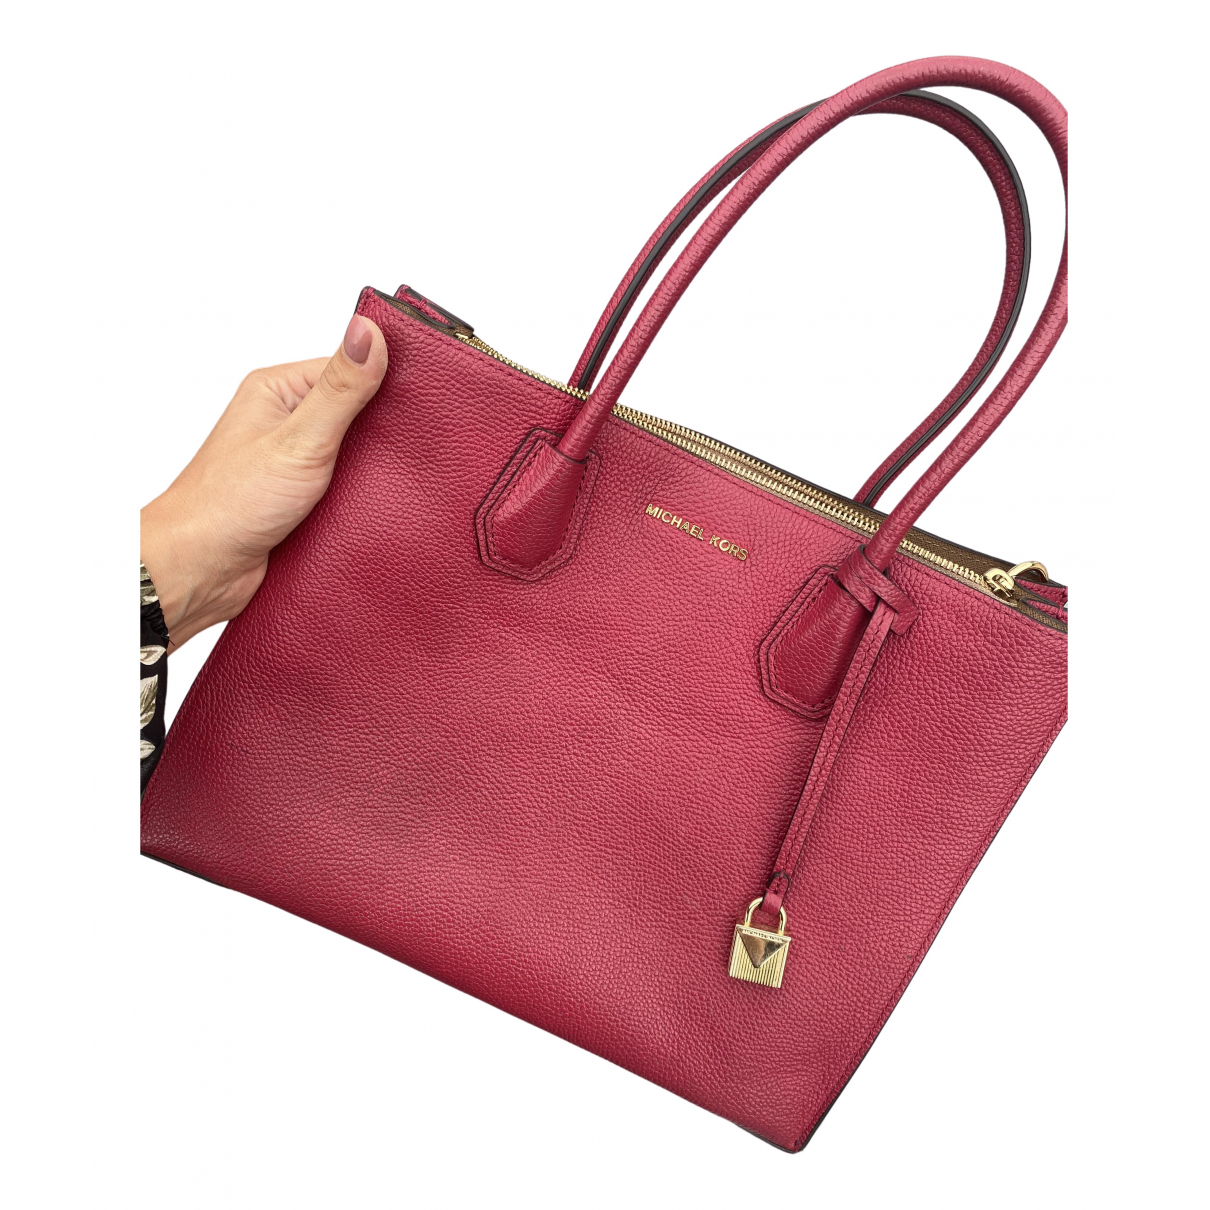 Michael Kors Mercer Burgundy Leather handbag for Women \N